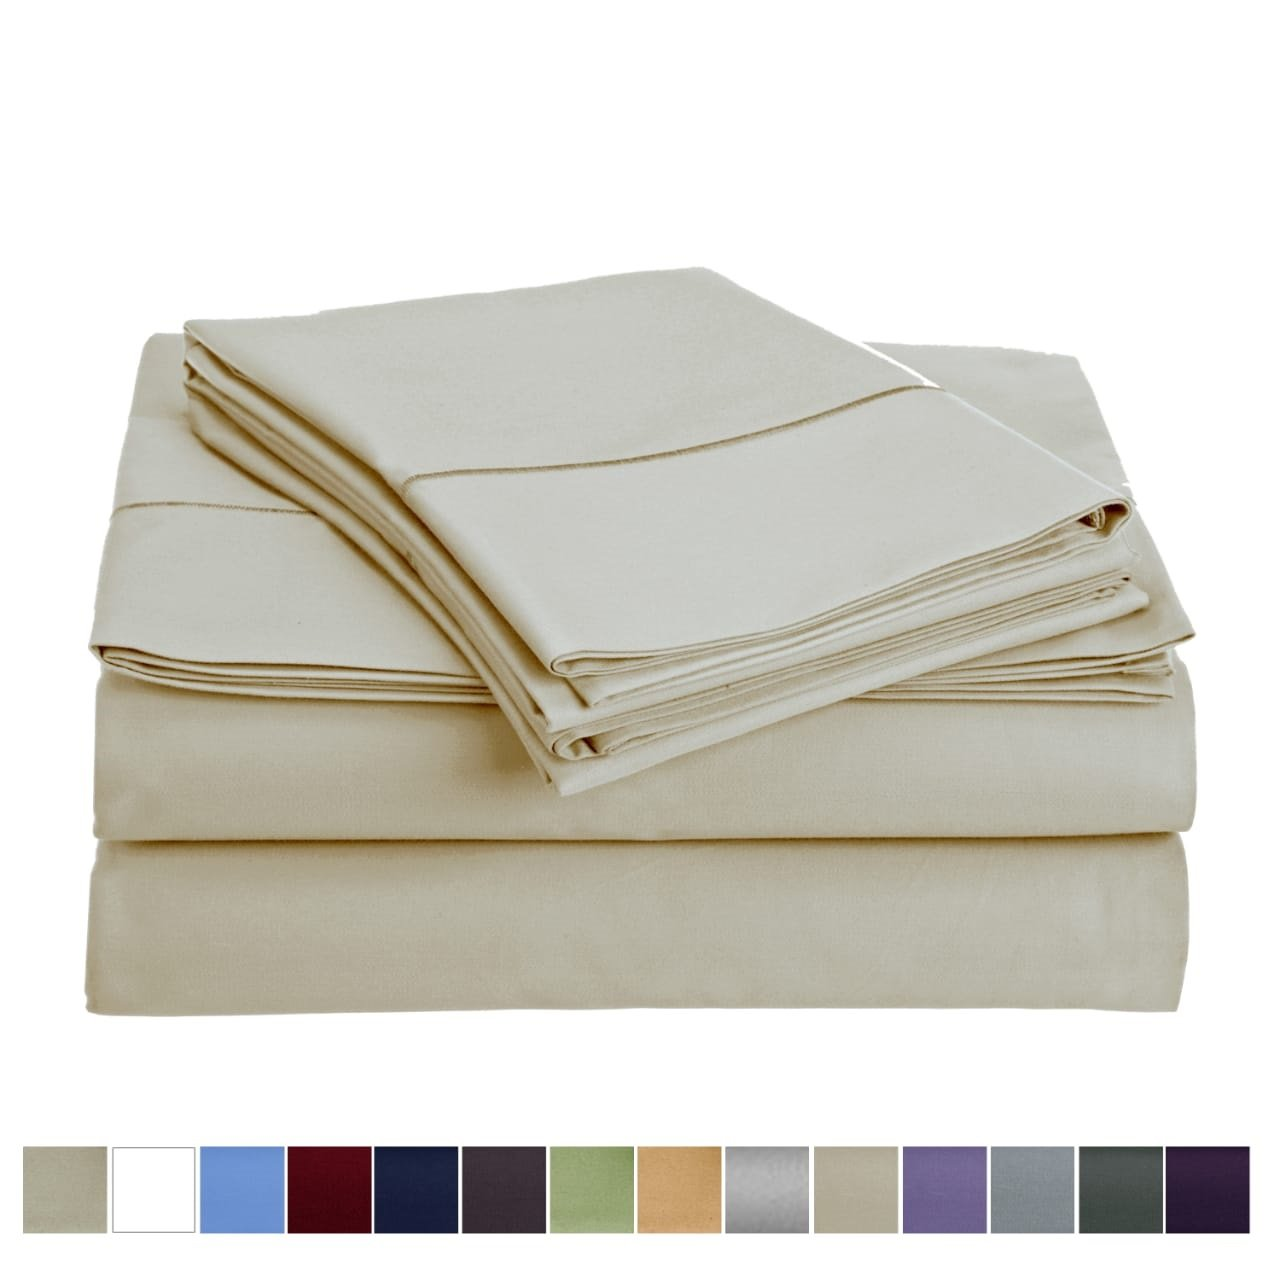 Audley Home 800 Thread Count 100% Egyptian Cotton Extra Long Staple Bed Sheet Set 3 Piece Bedding Extra Deep Pocket Upto 18'' Soft Breathable Hypoallergenic (Twin, Ivory)